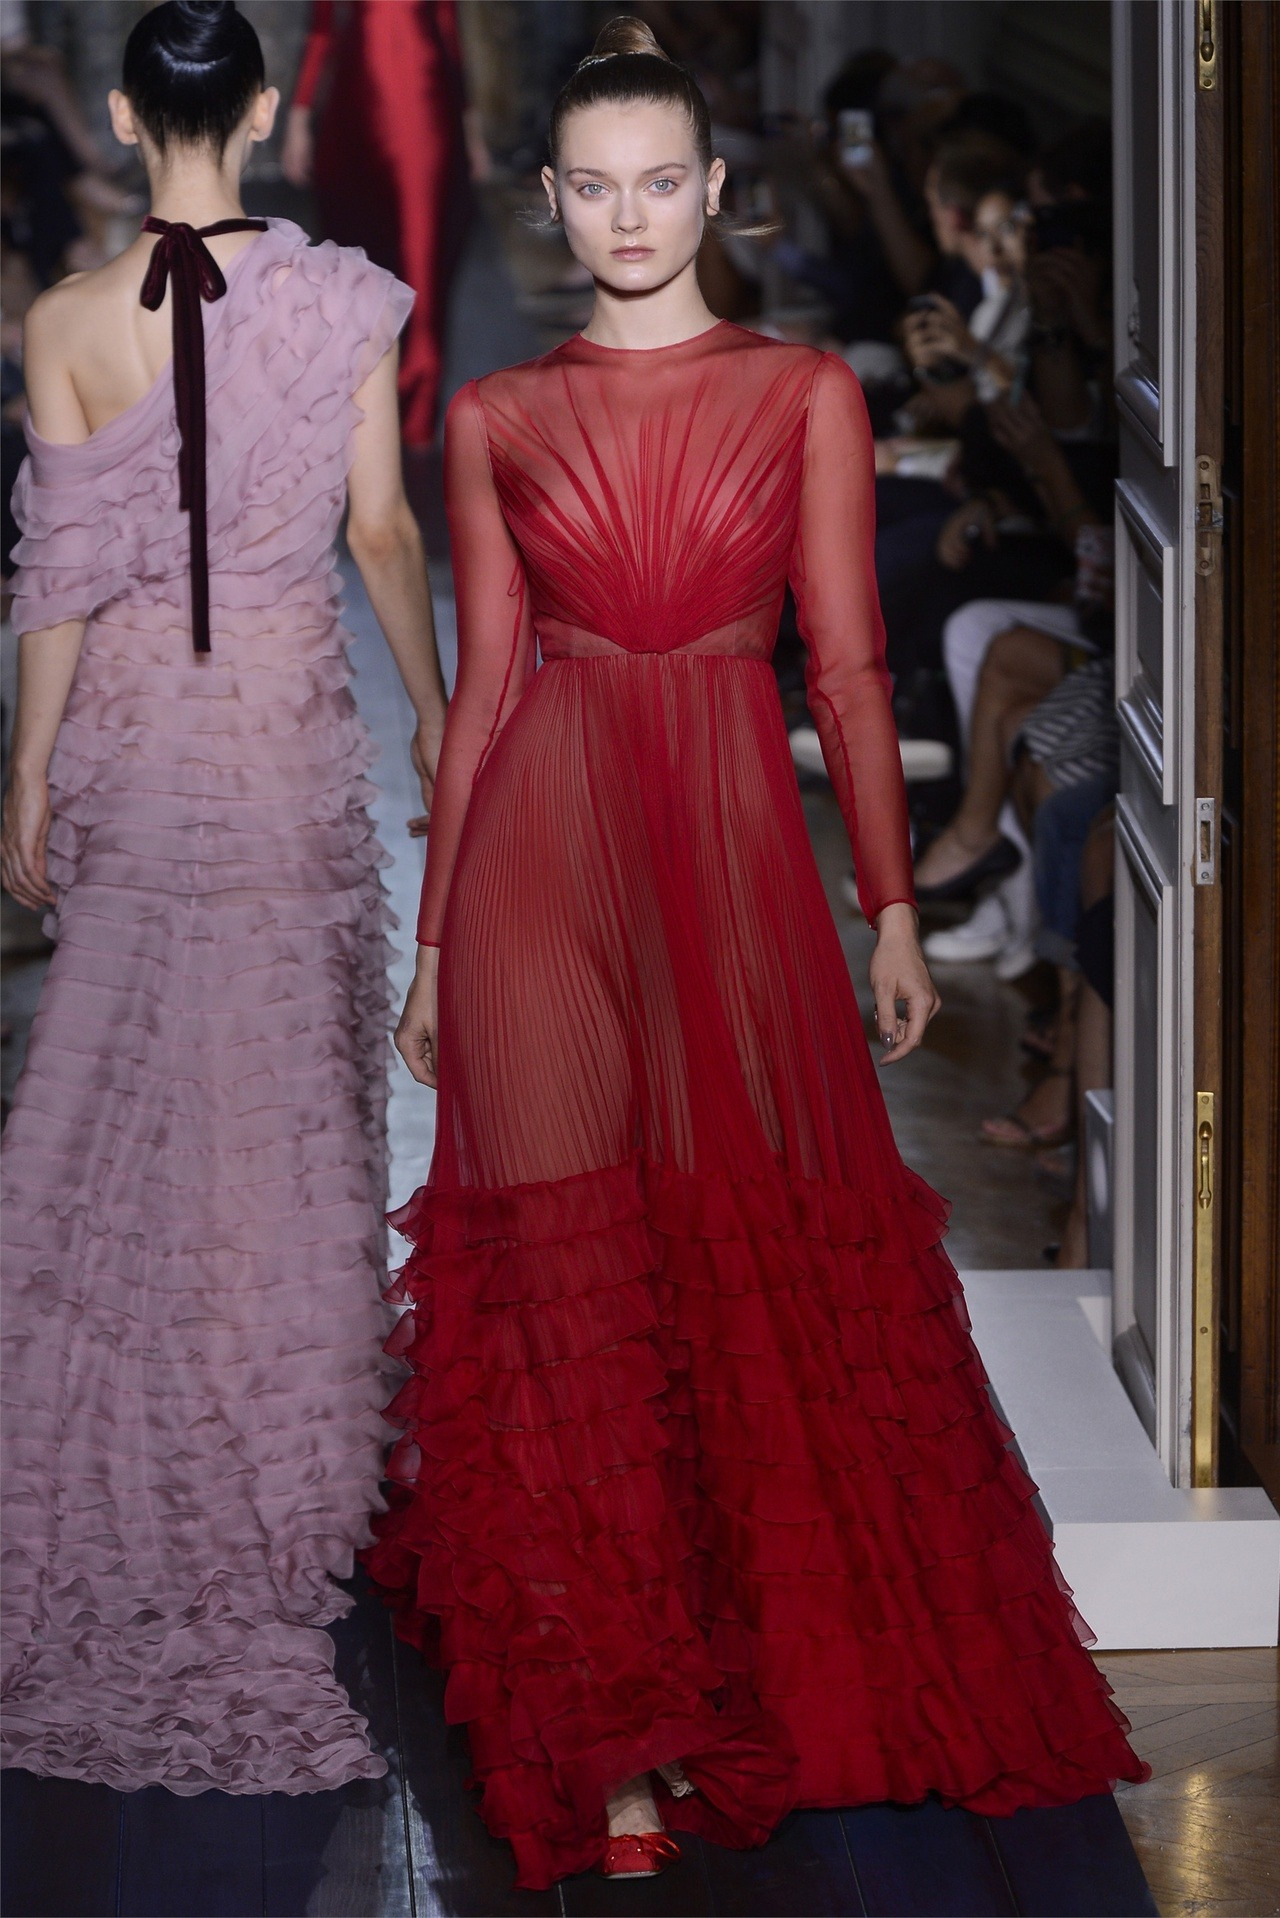 VALENTINO Haute Couture Fall/Winter 2012 Paris Fashion Week